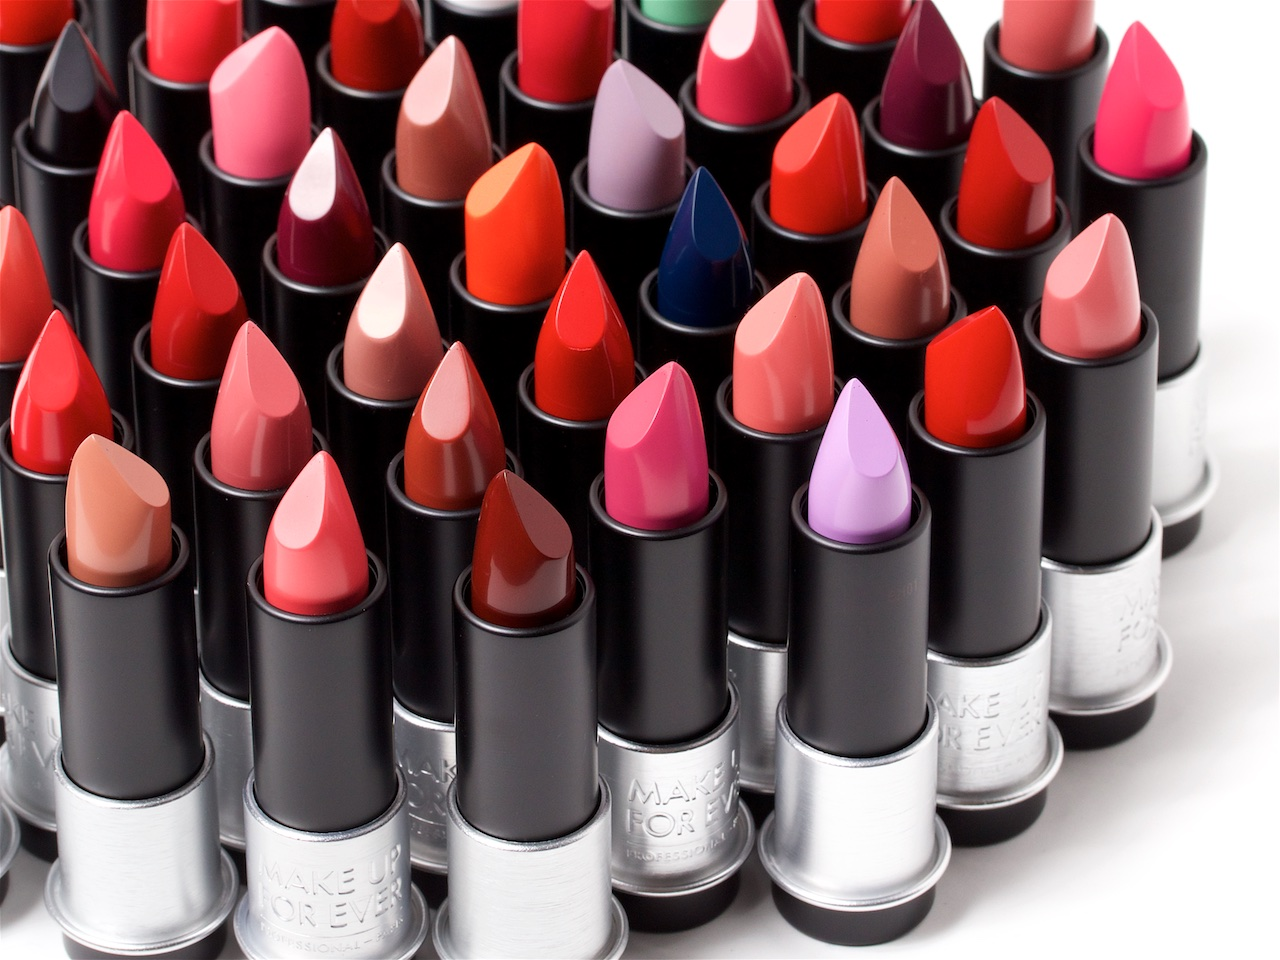 Women with fair skin, look great in lipstick shades such as nudes in a slightly apricot shade, pinks and light corals. Stay away from browns, which will appear blah. Those with a .